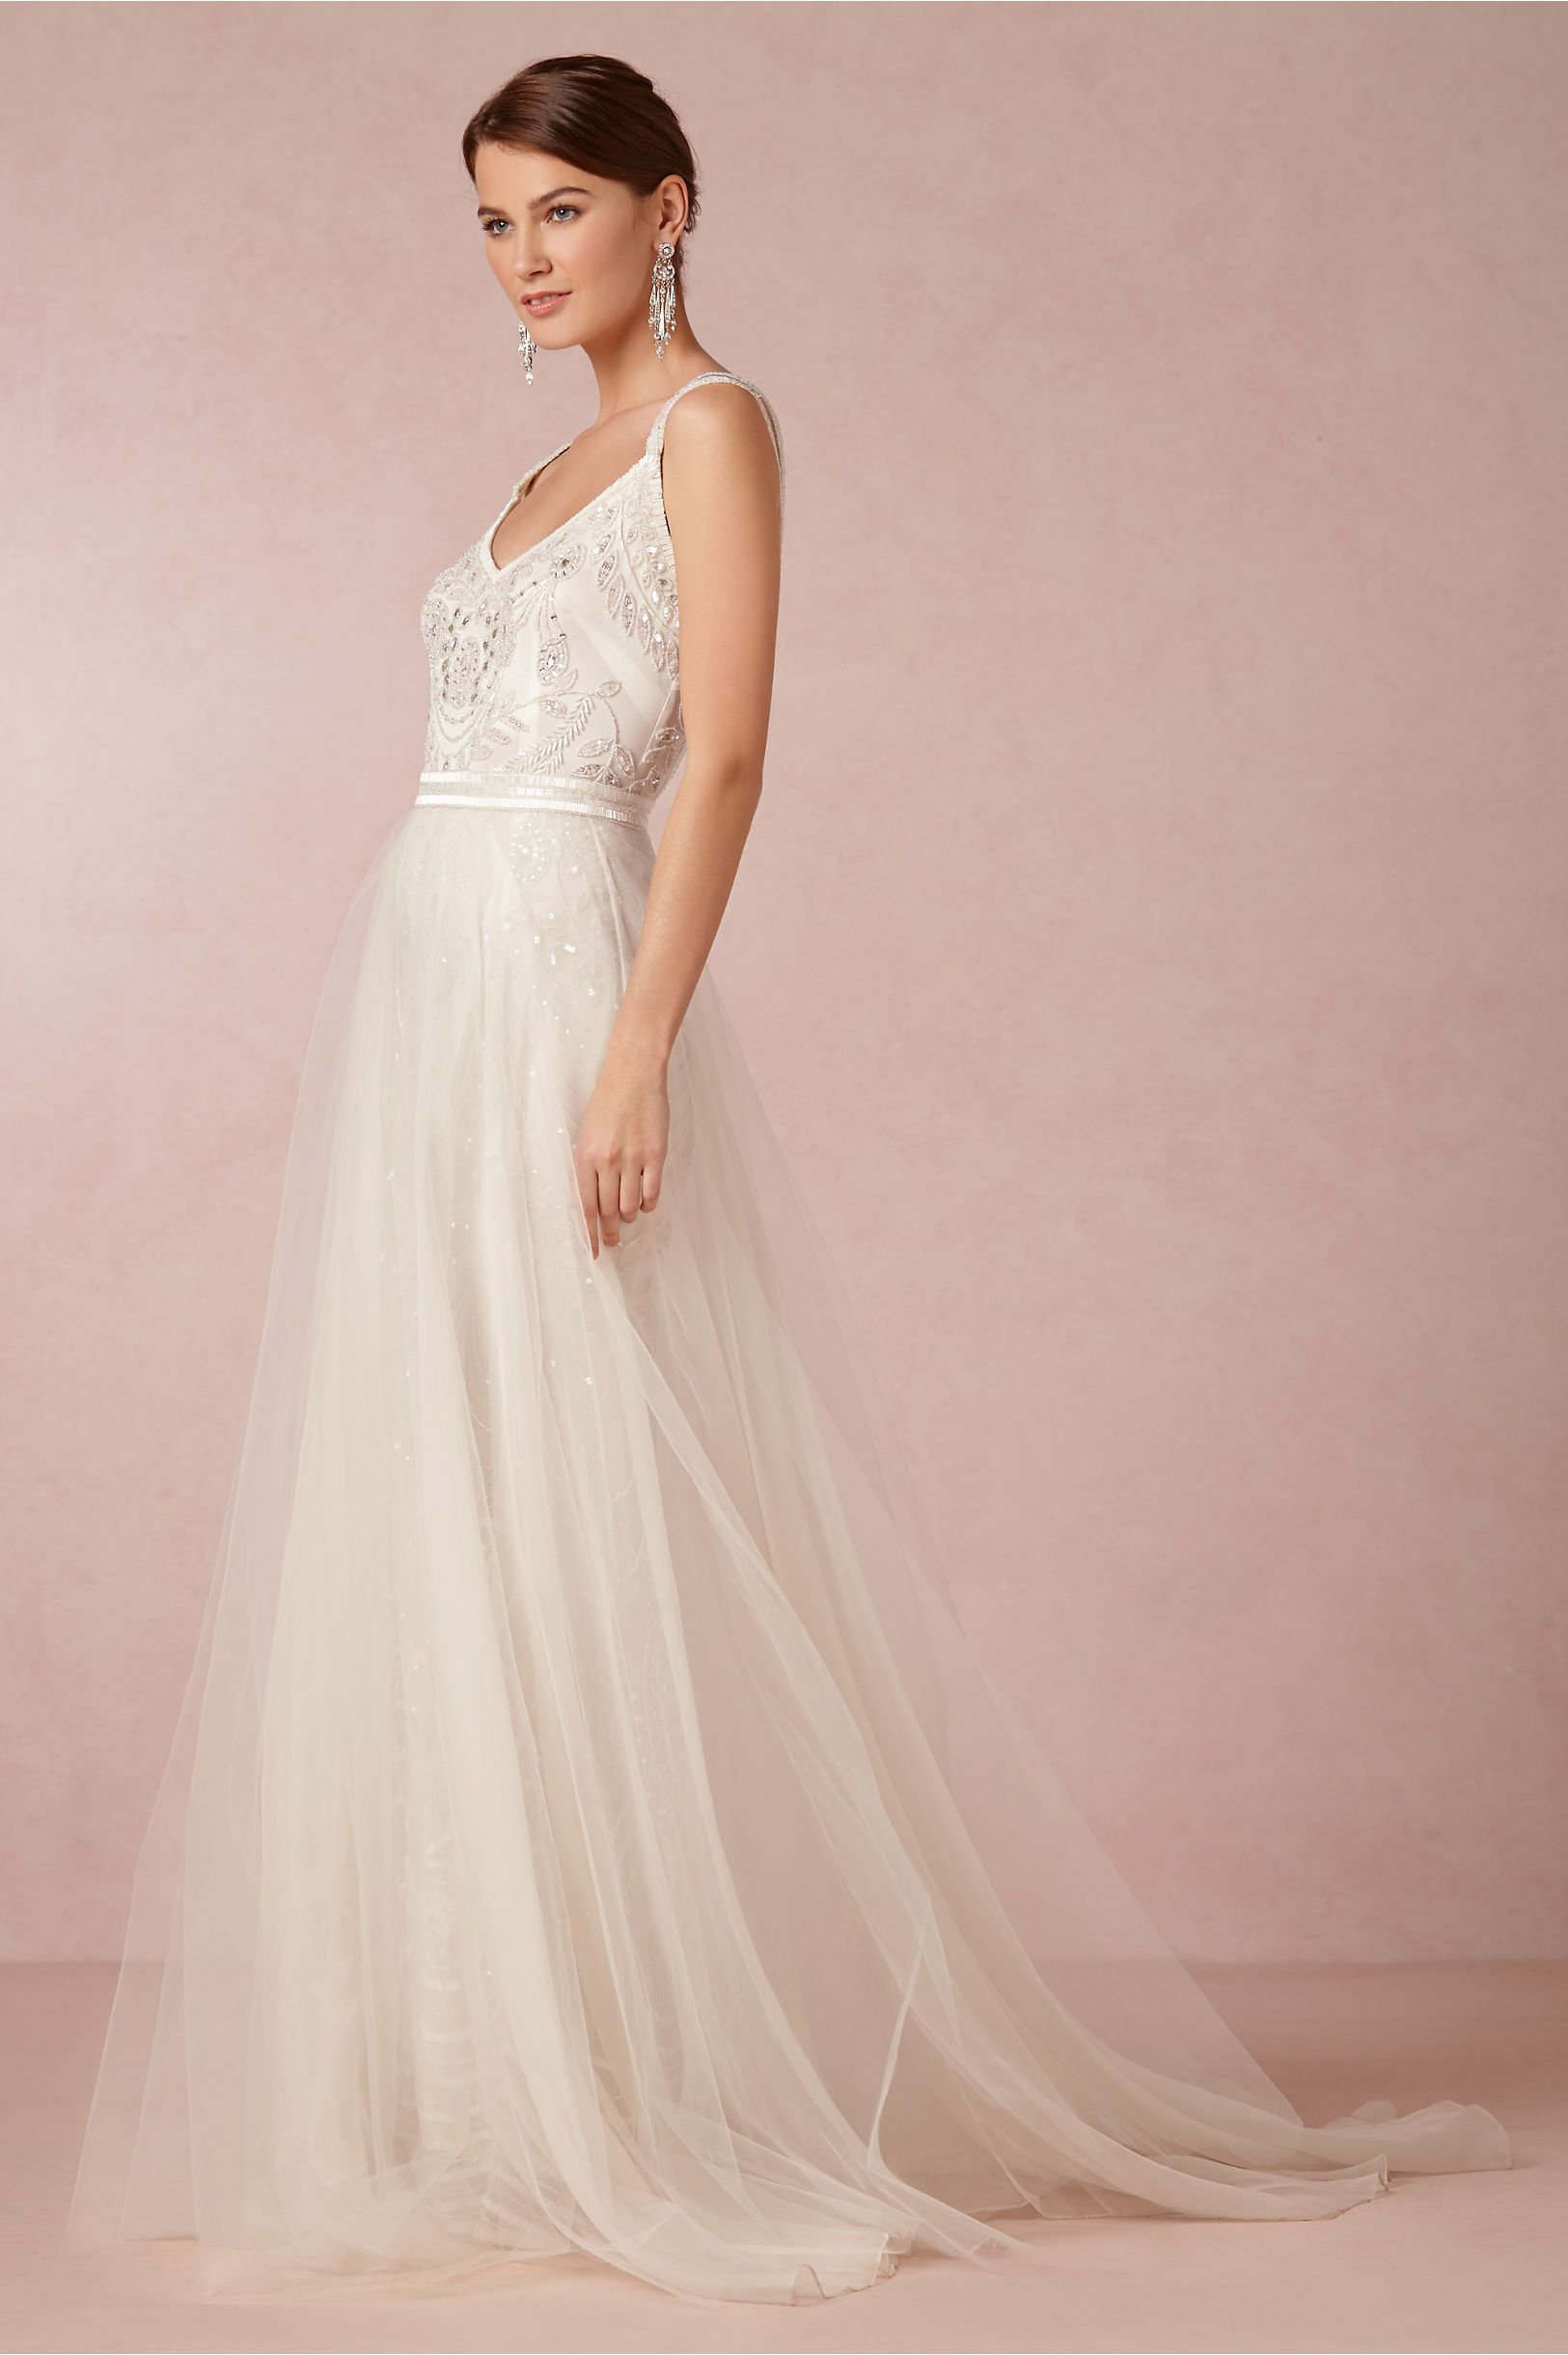 Love the detail on the bodice of this dress. Looks light and airy ...